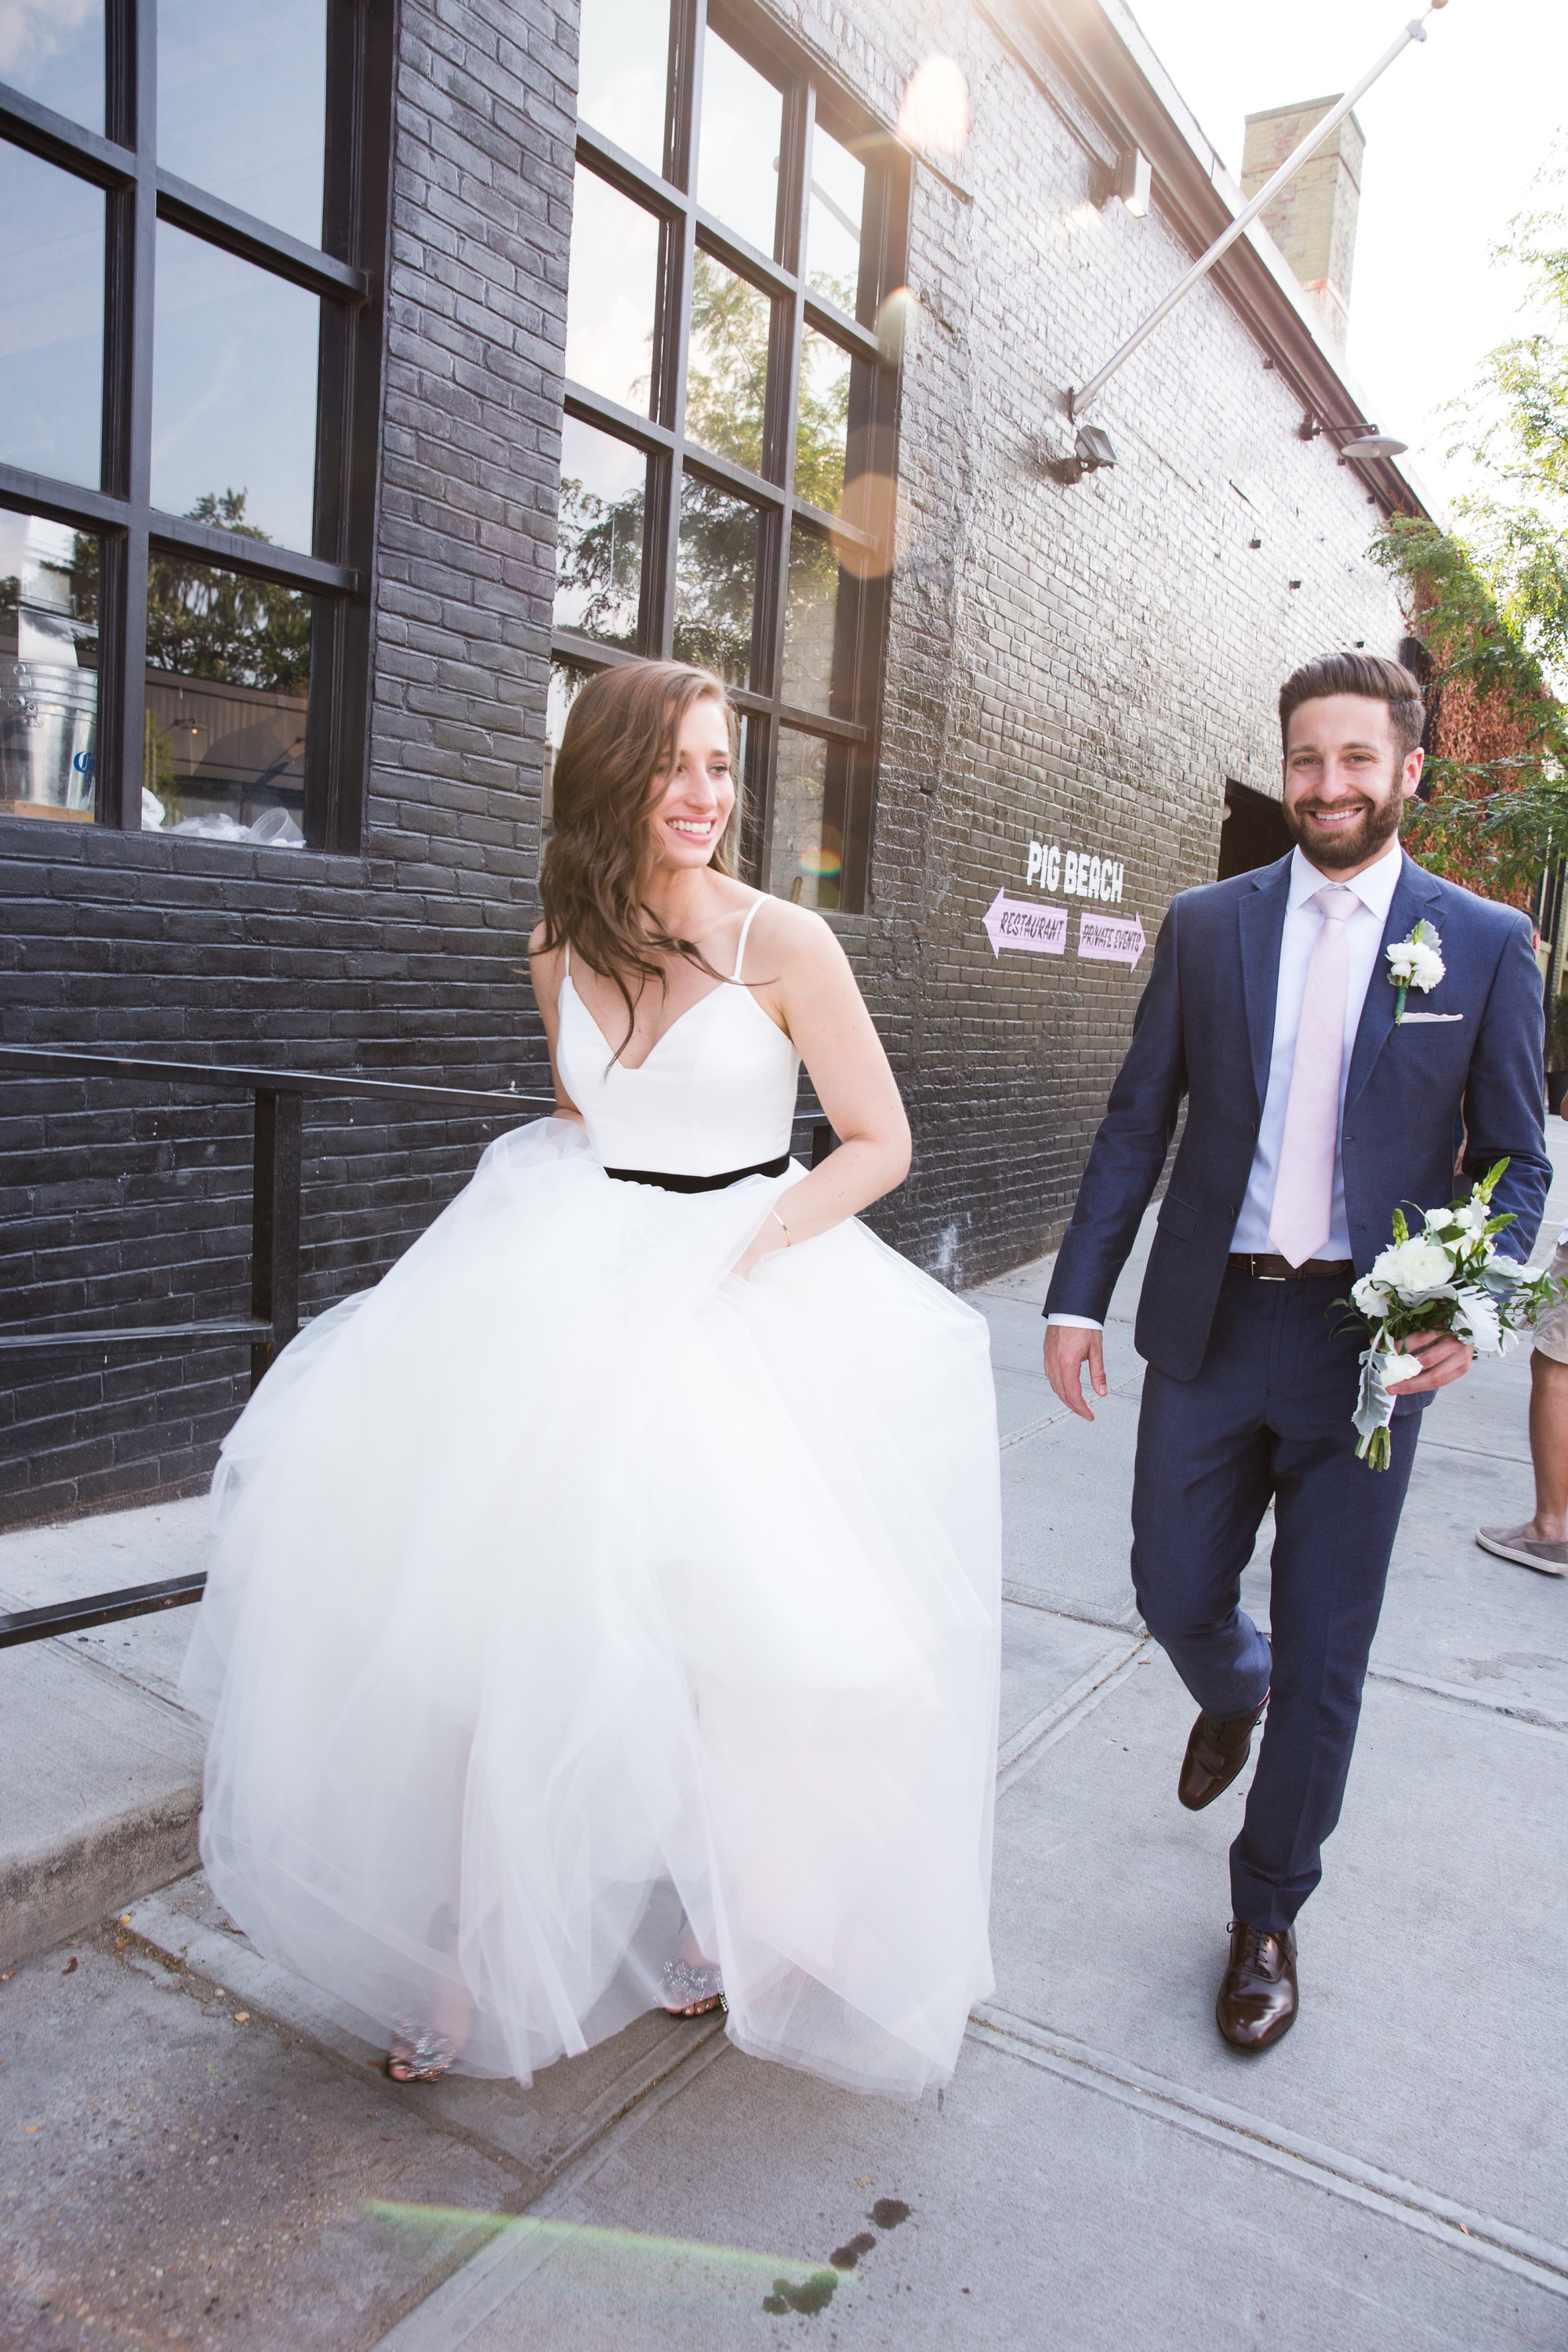 Brooklyn Wedding - Photo: Alison Luntz